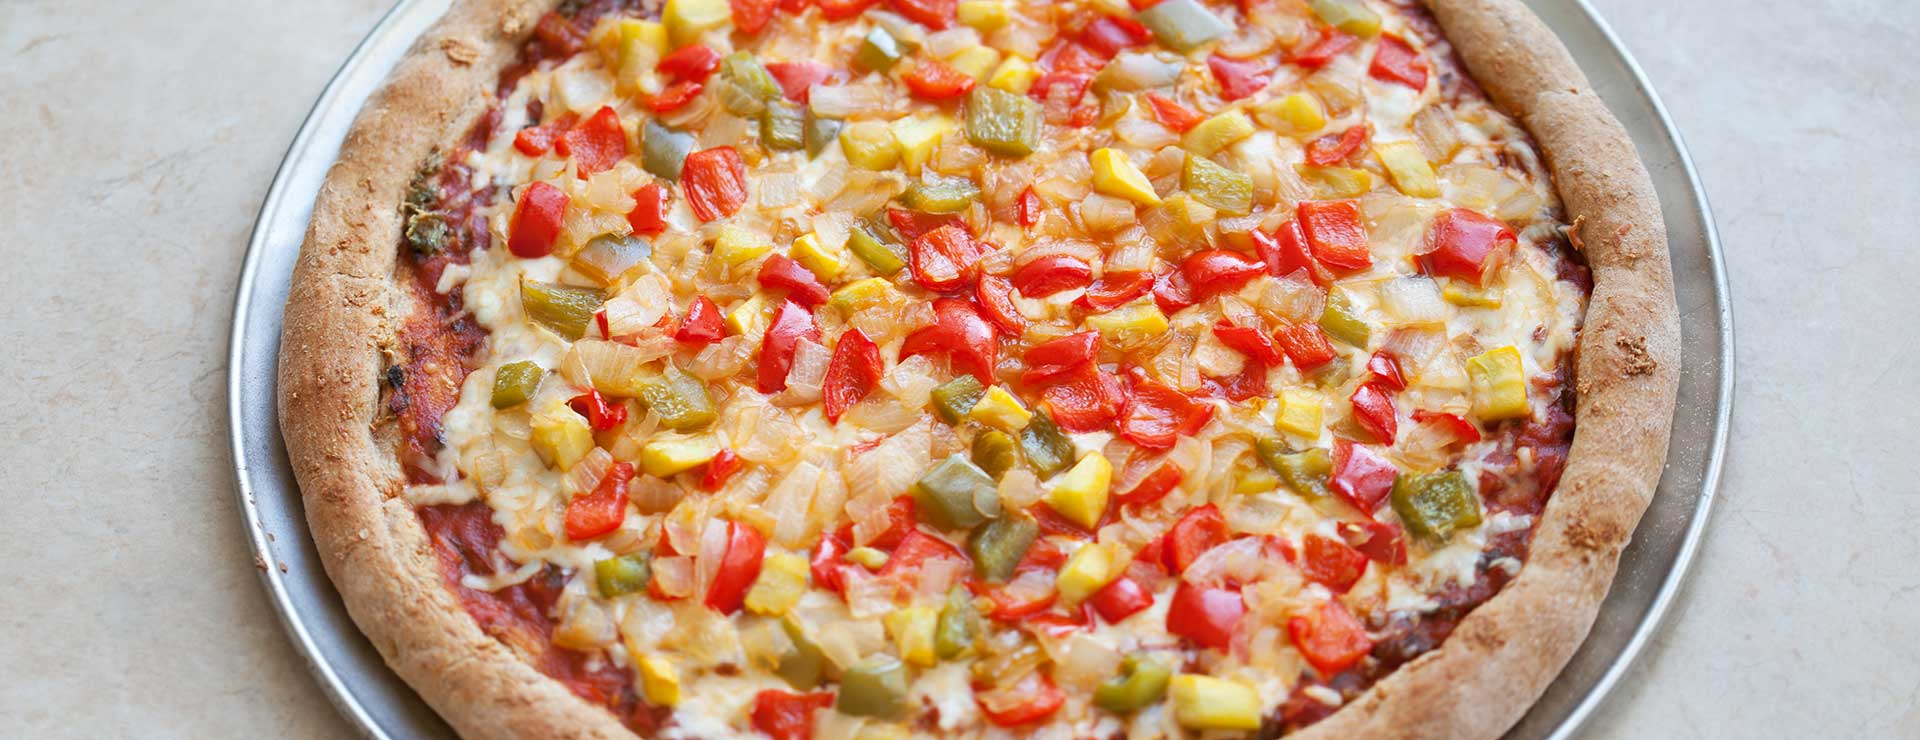 pizza on wheat crust with peppers and onions